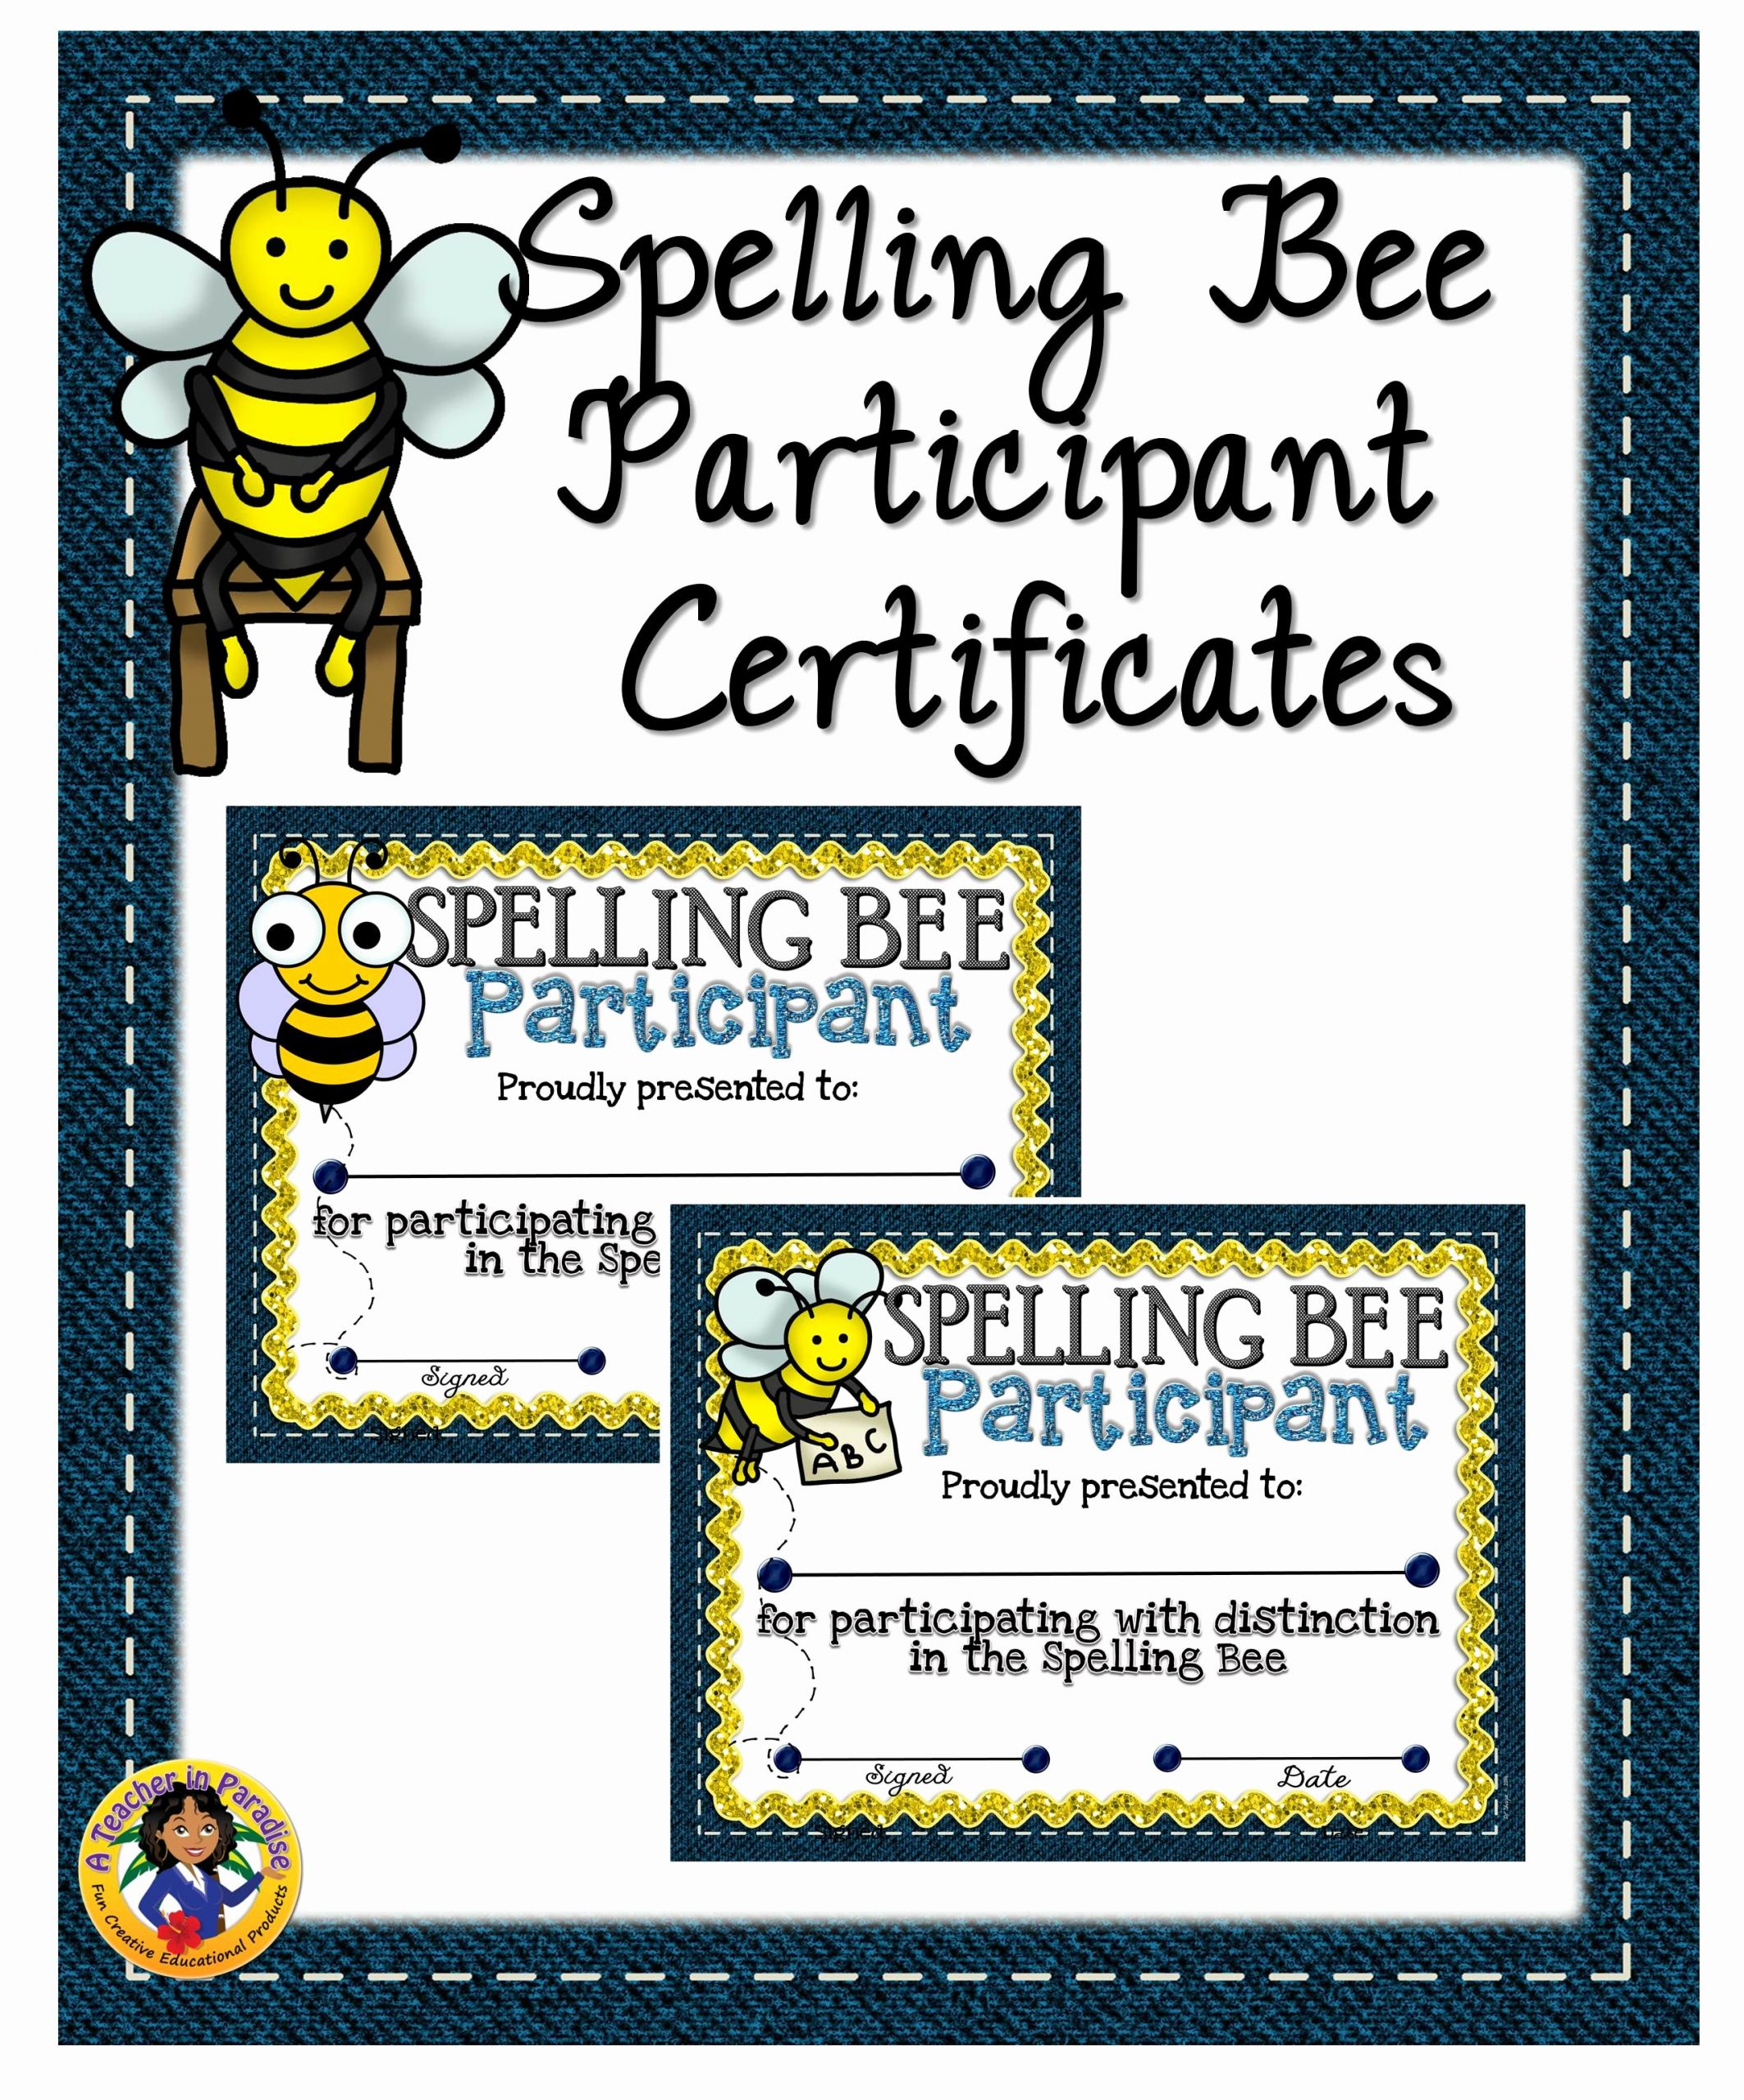 Spelling Bee Certificate Template Lovely Spelling Bee Participant Certificates